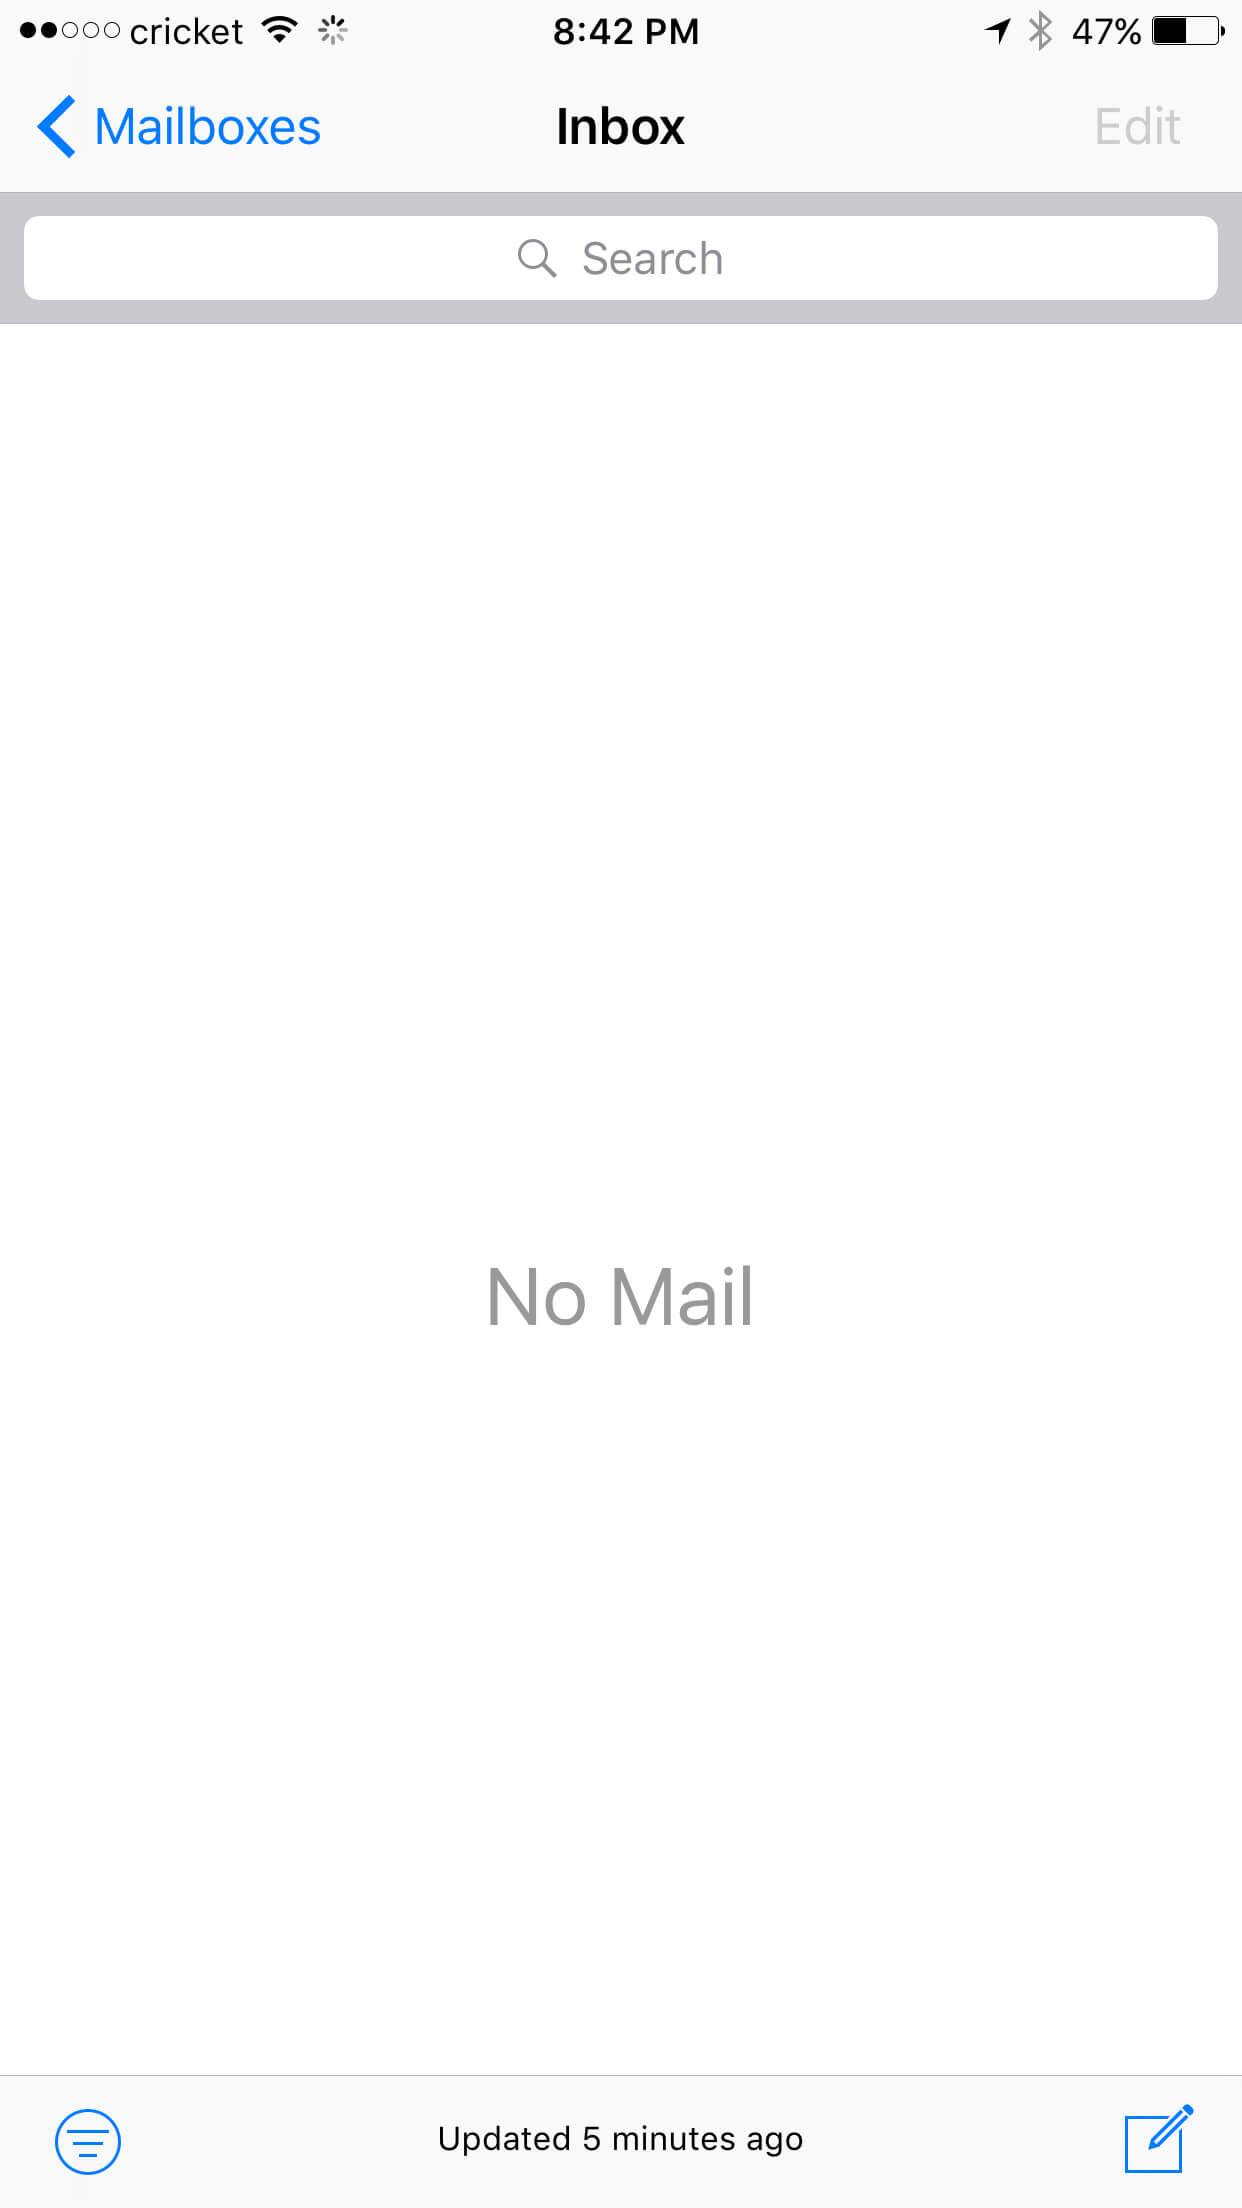 How to Mass Delete Messages in iPhone's Mail App - TechSpot